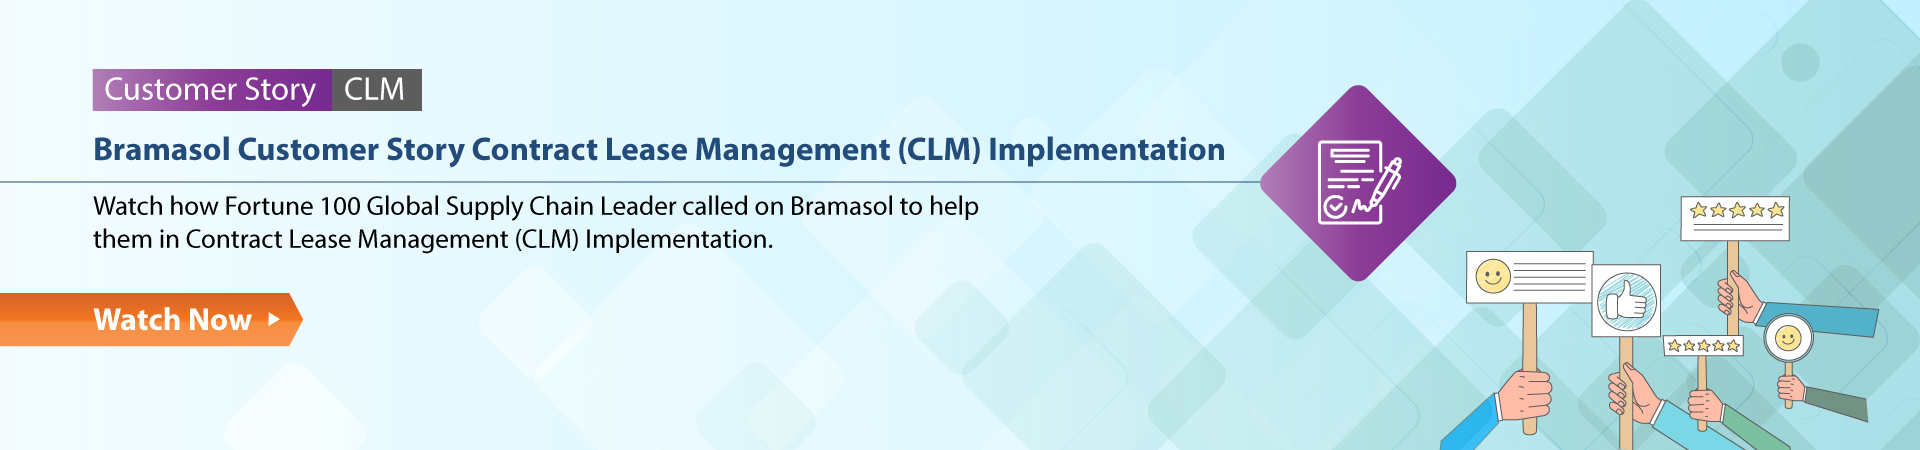 Customer Story Contract Lease Management (CLM) Implementation